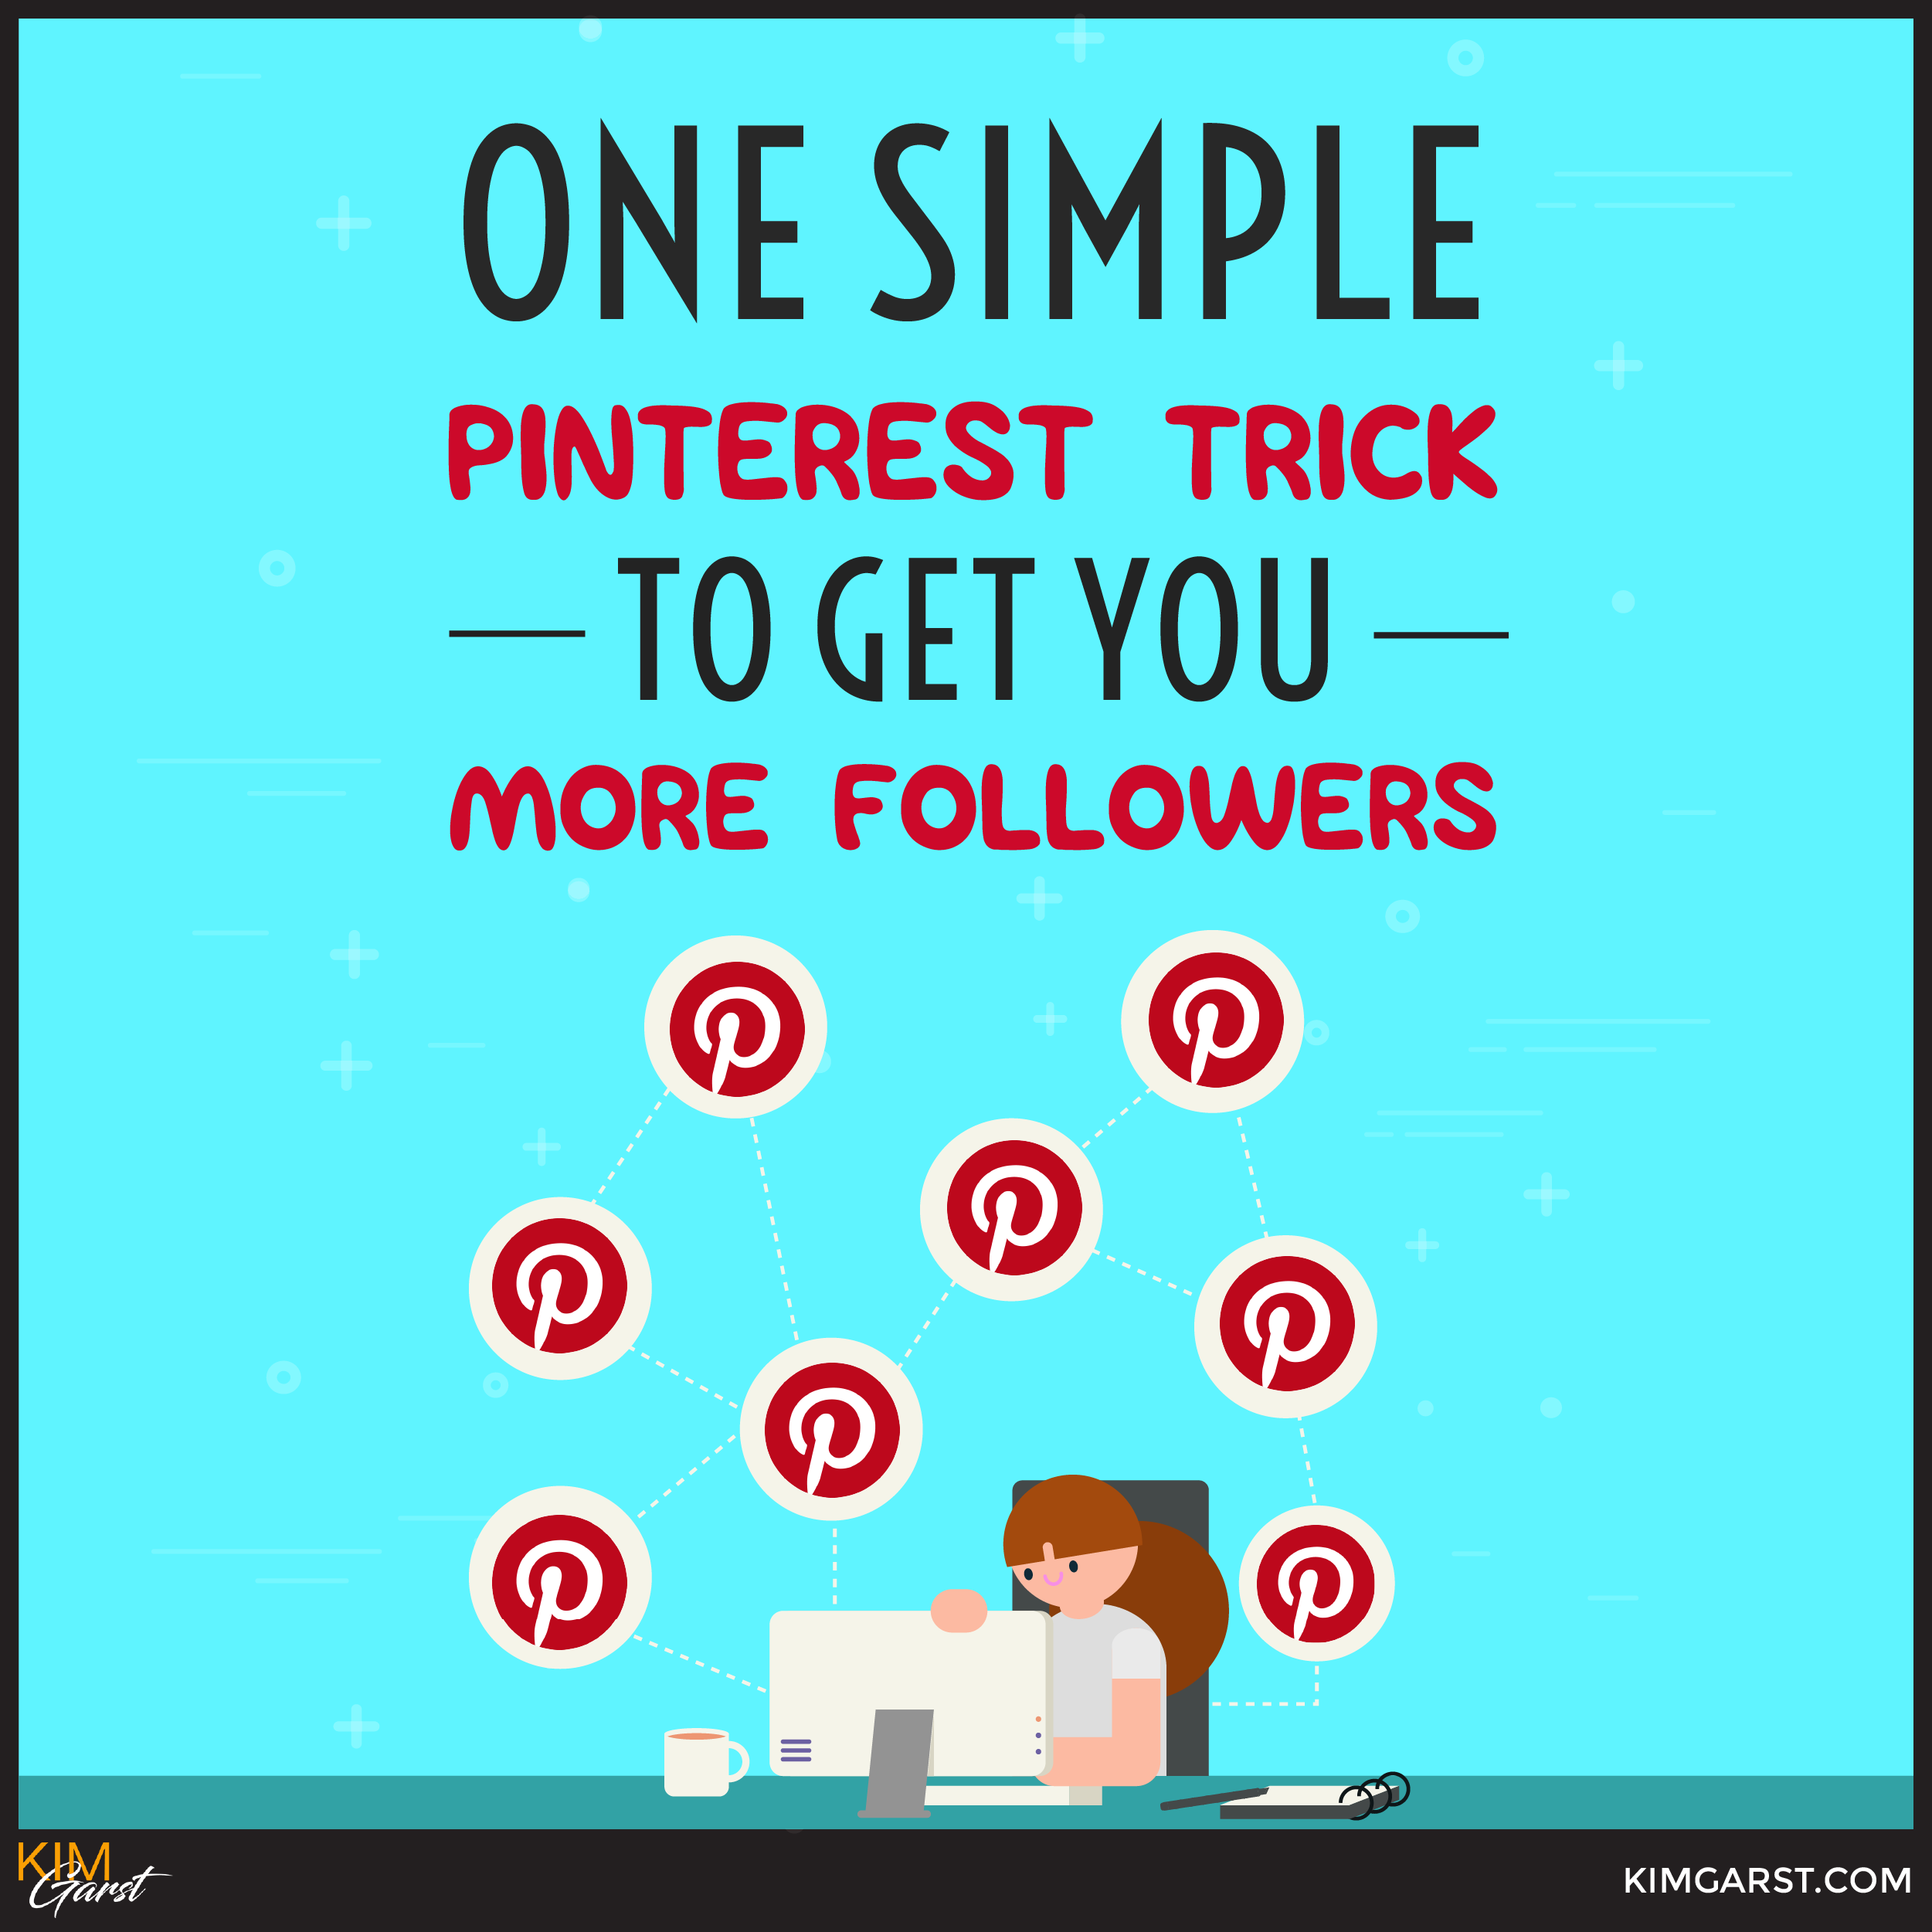 One SIMPLE Pinterest Trick to Get You More Followers